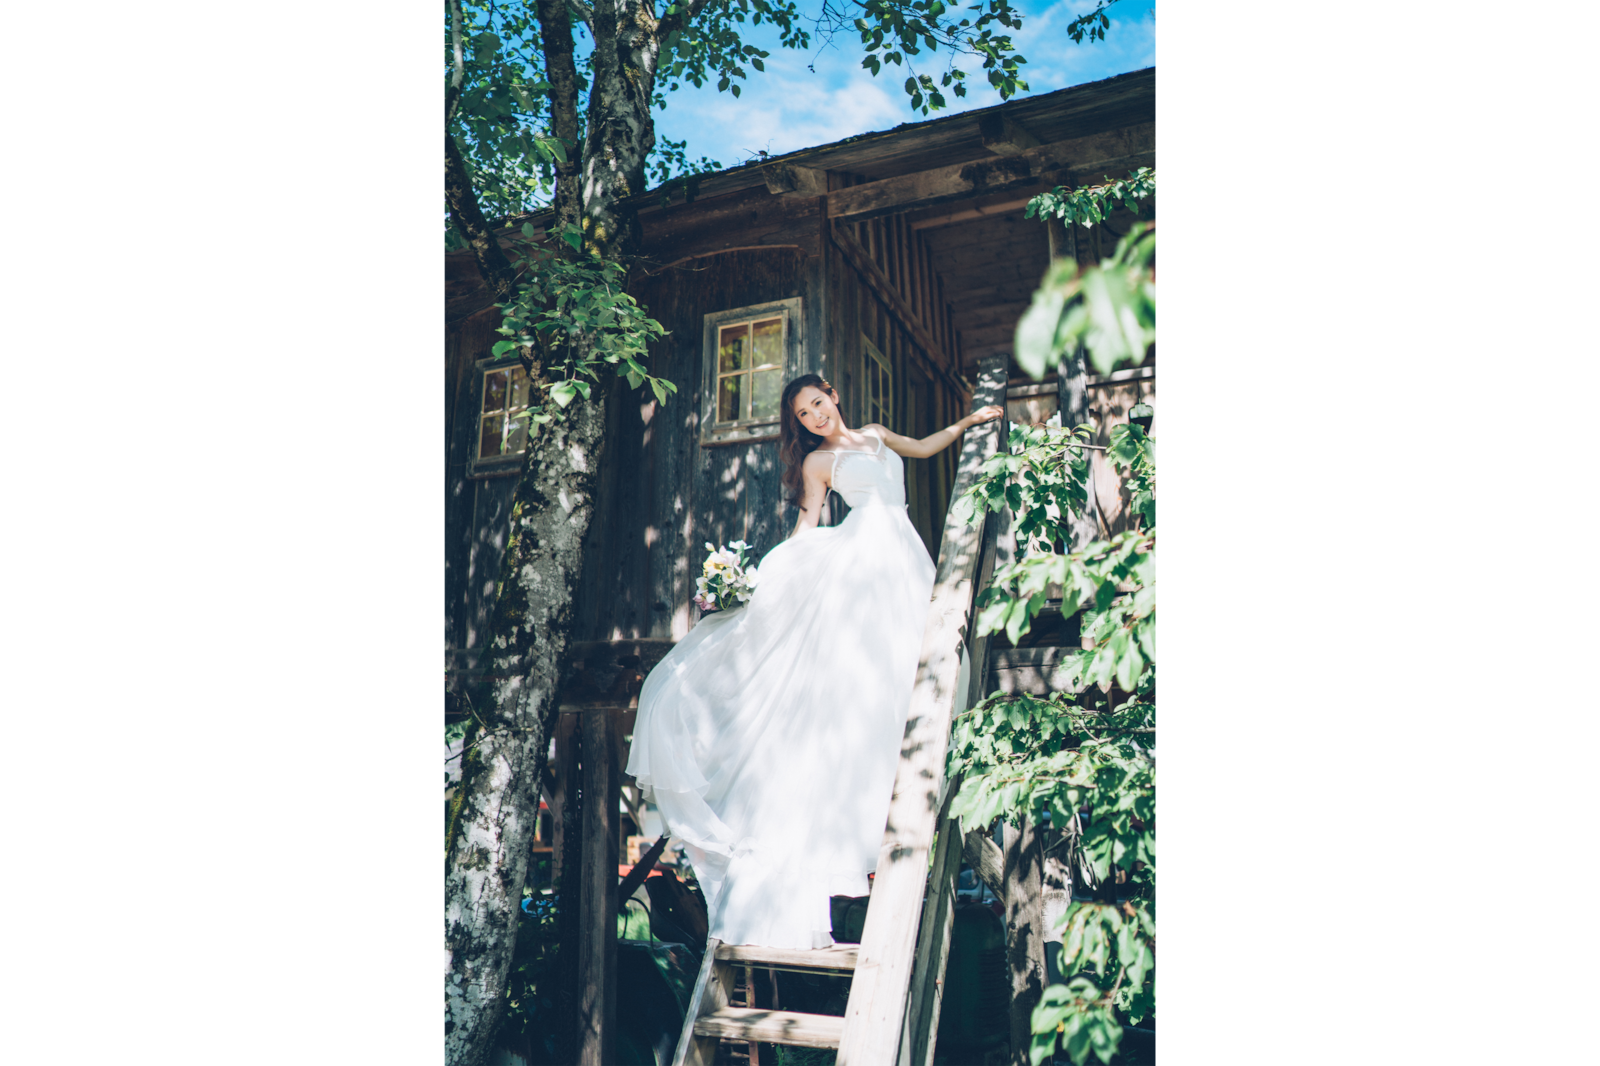 bride in white gown standing on steps of hut